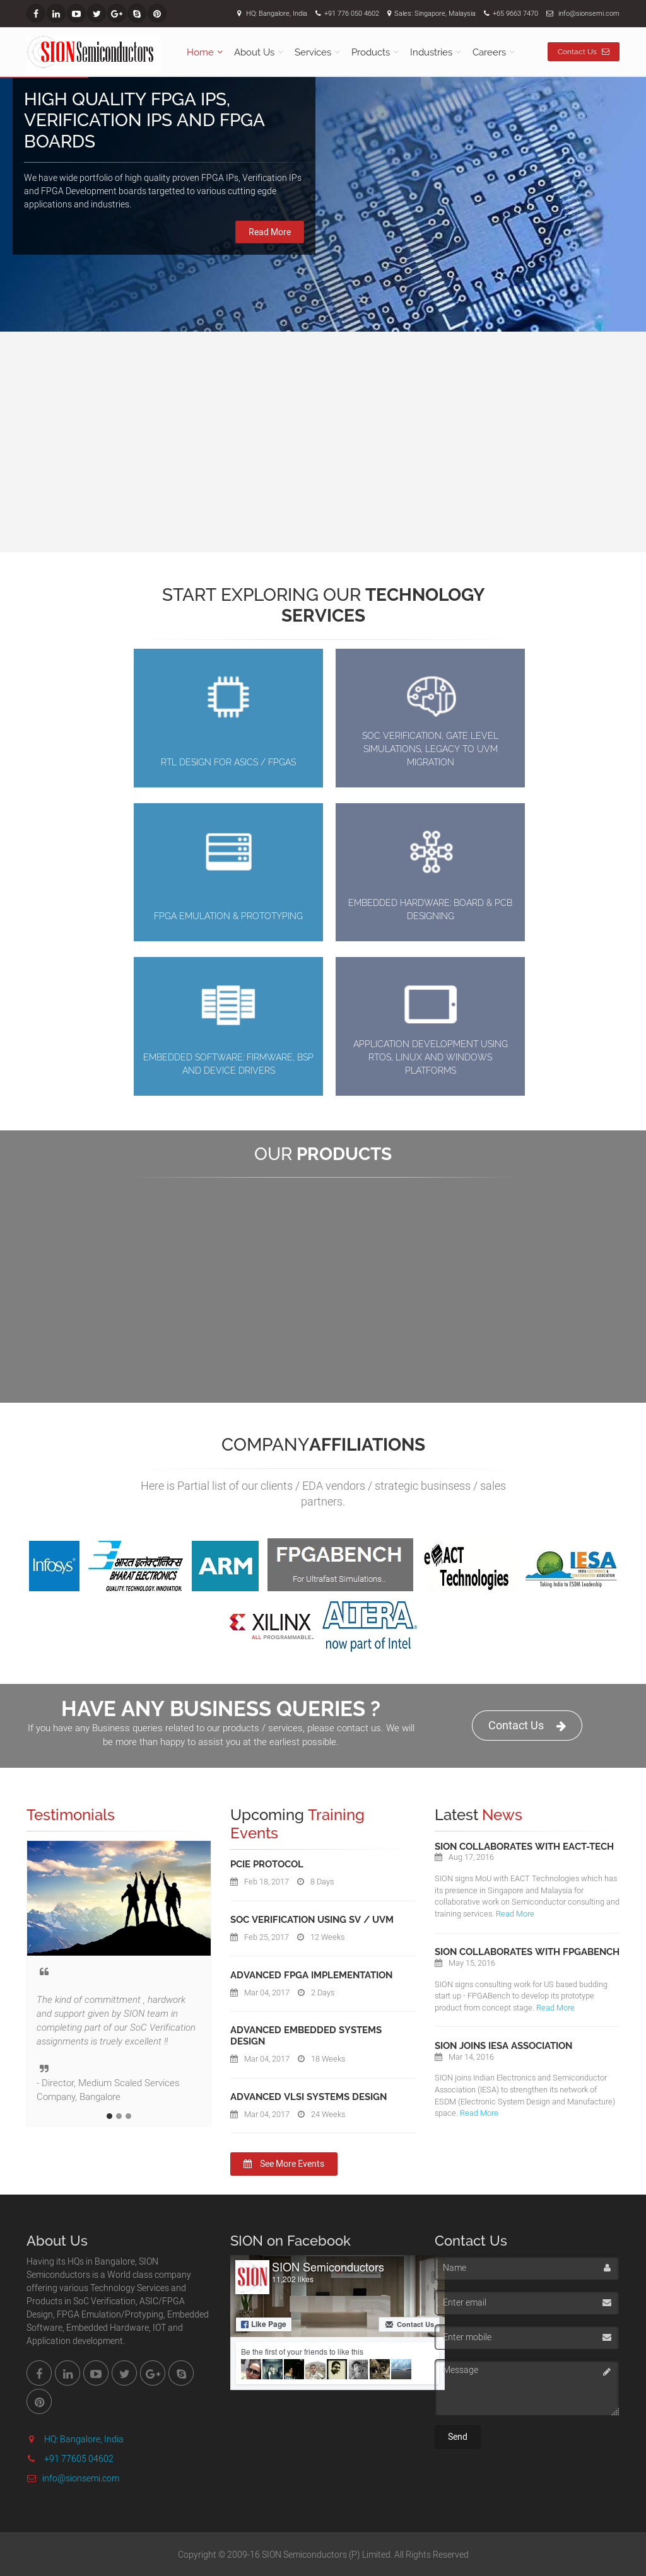 Sion Semiconductors Competitors, Revenue and Employees